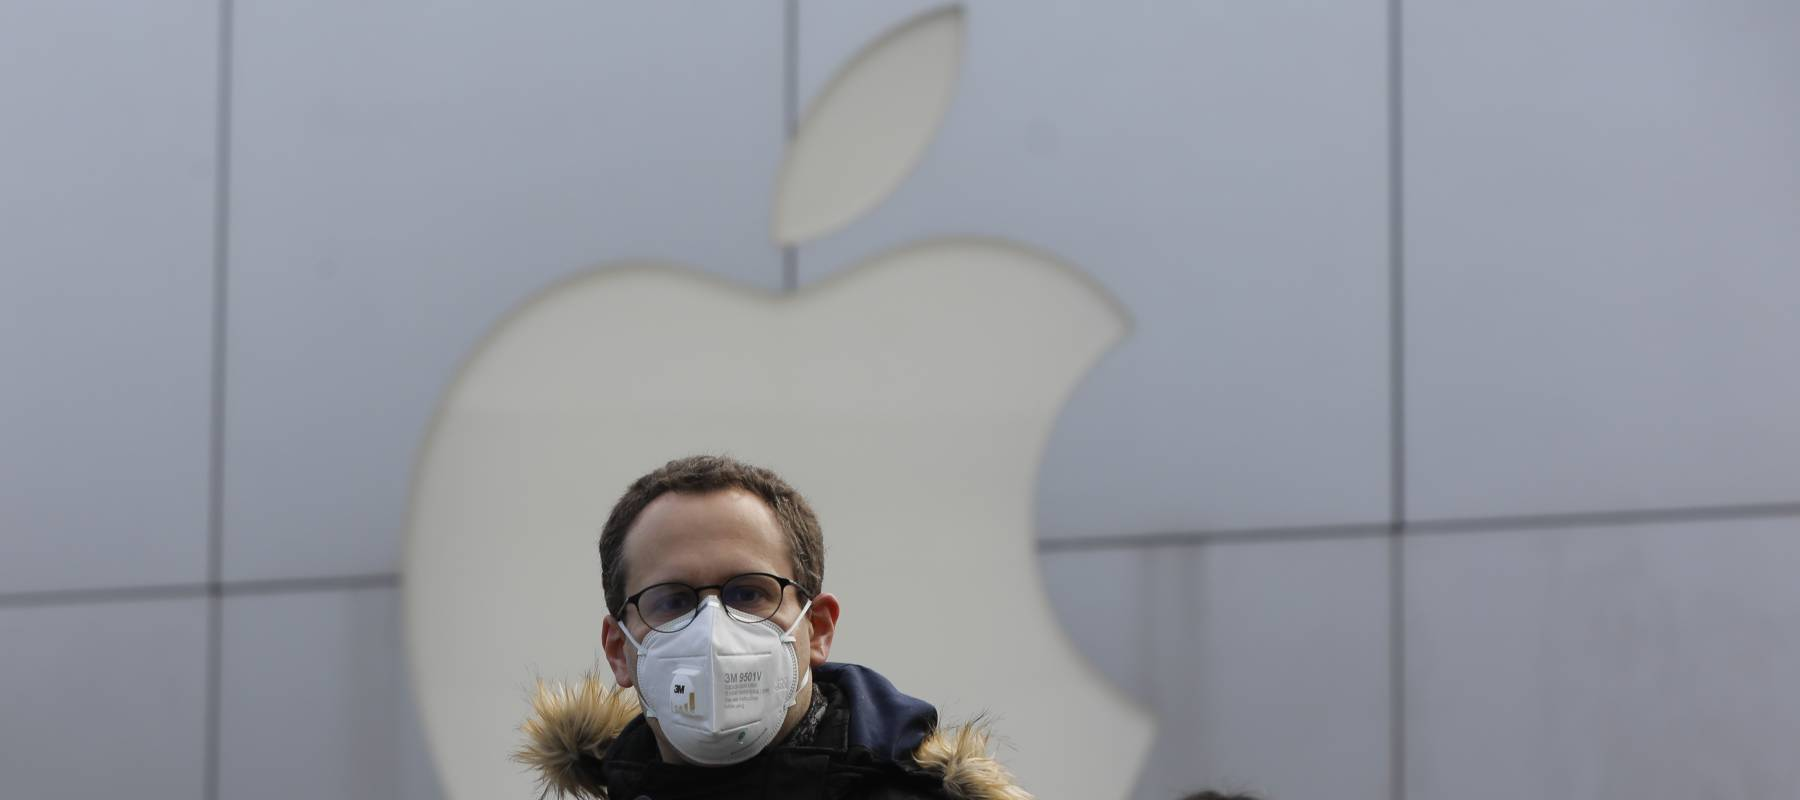 People wear masks as they walk past a closed Apple store at Sanlitun in Beijing, China, 02 February 2020.